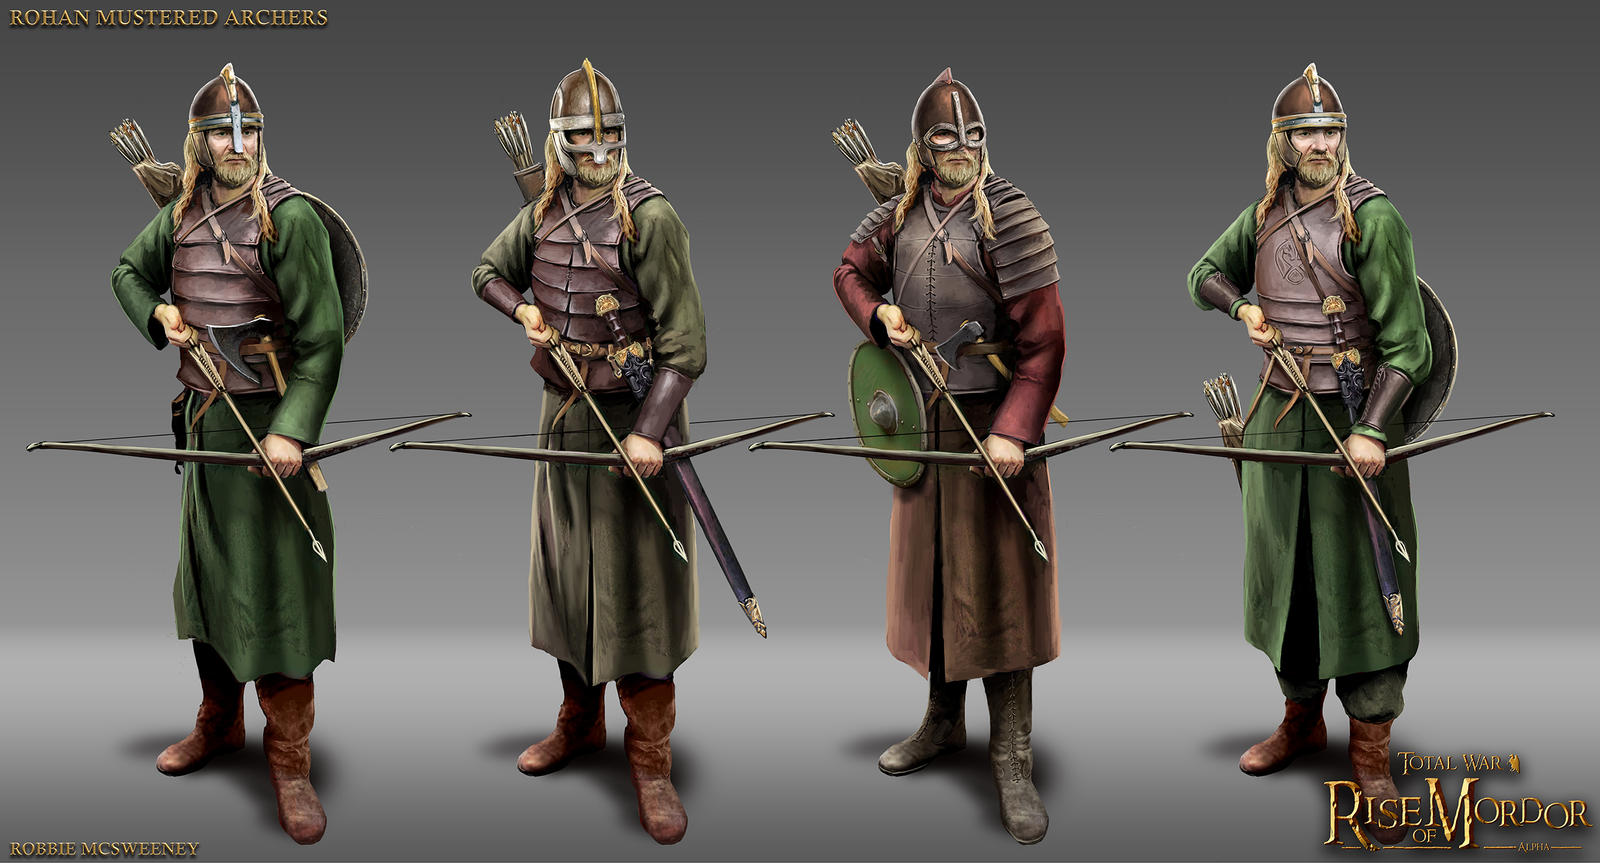 Rohan mustered archers by robbiemcsweeney on deviantart for Rohan design